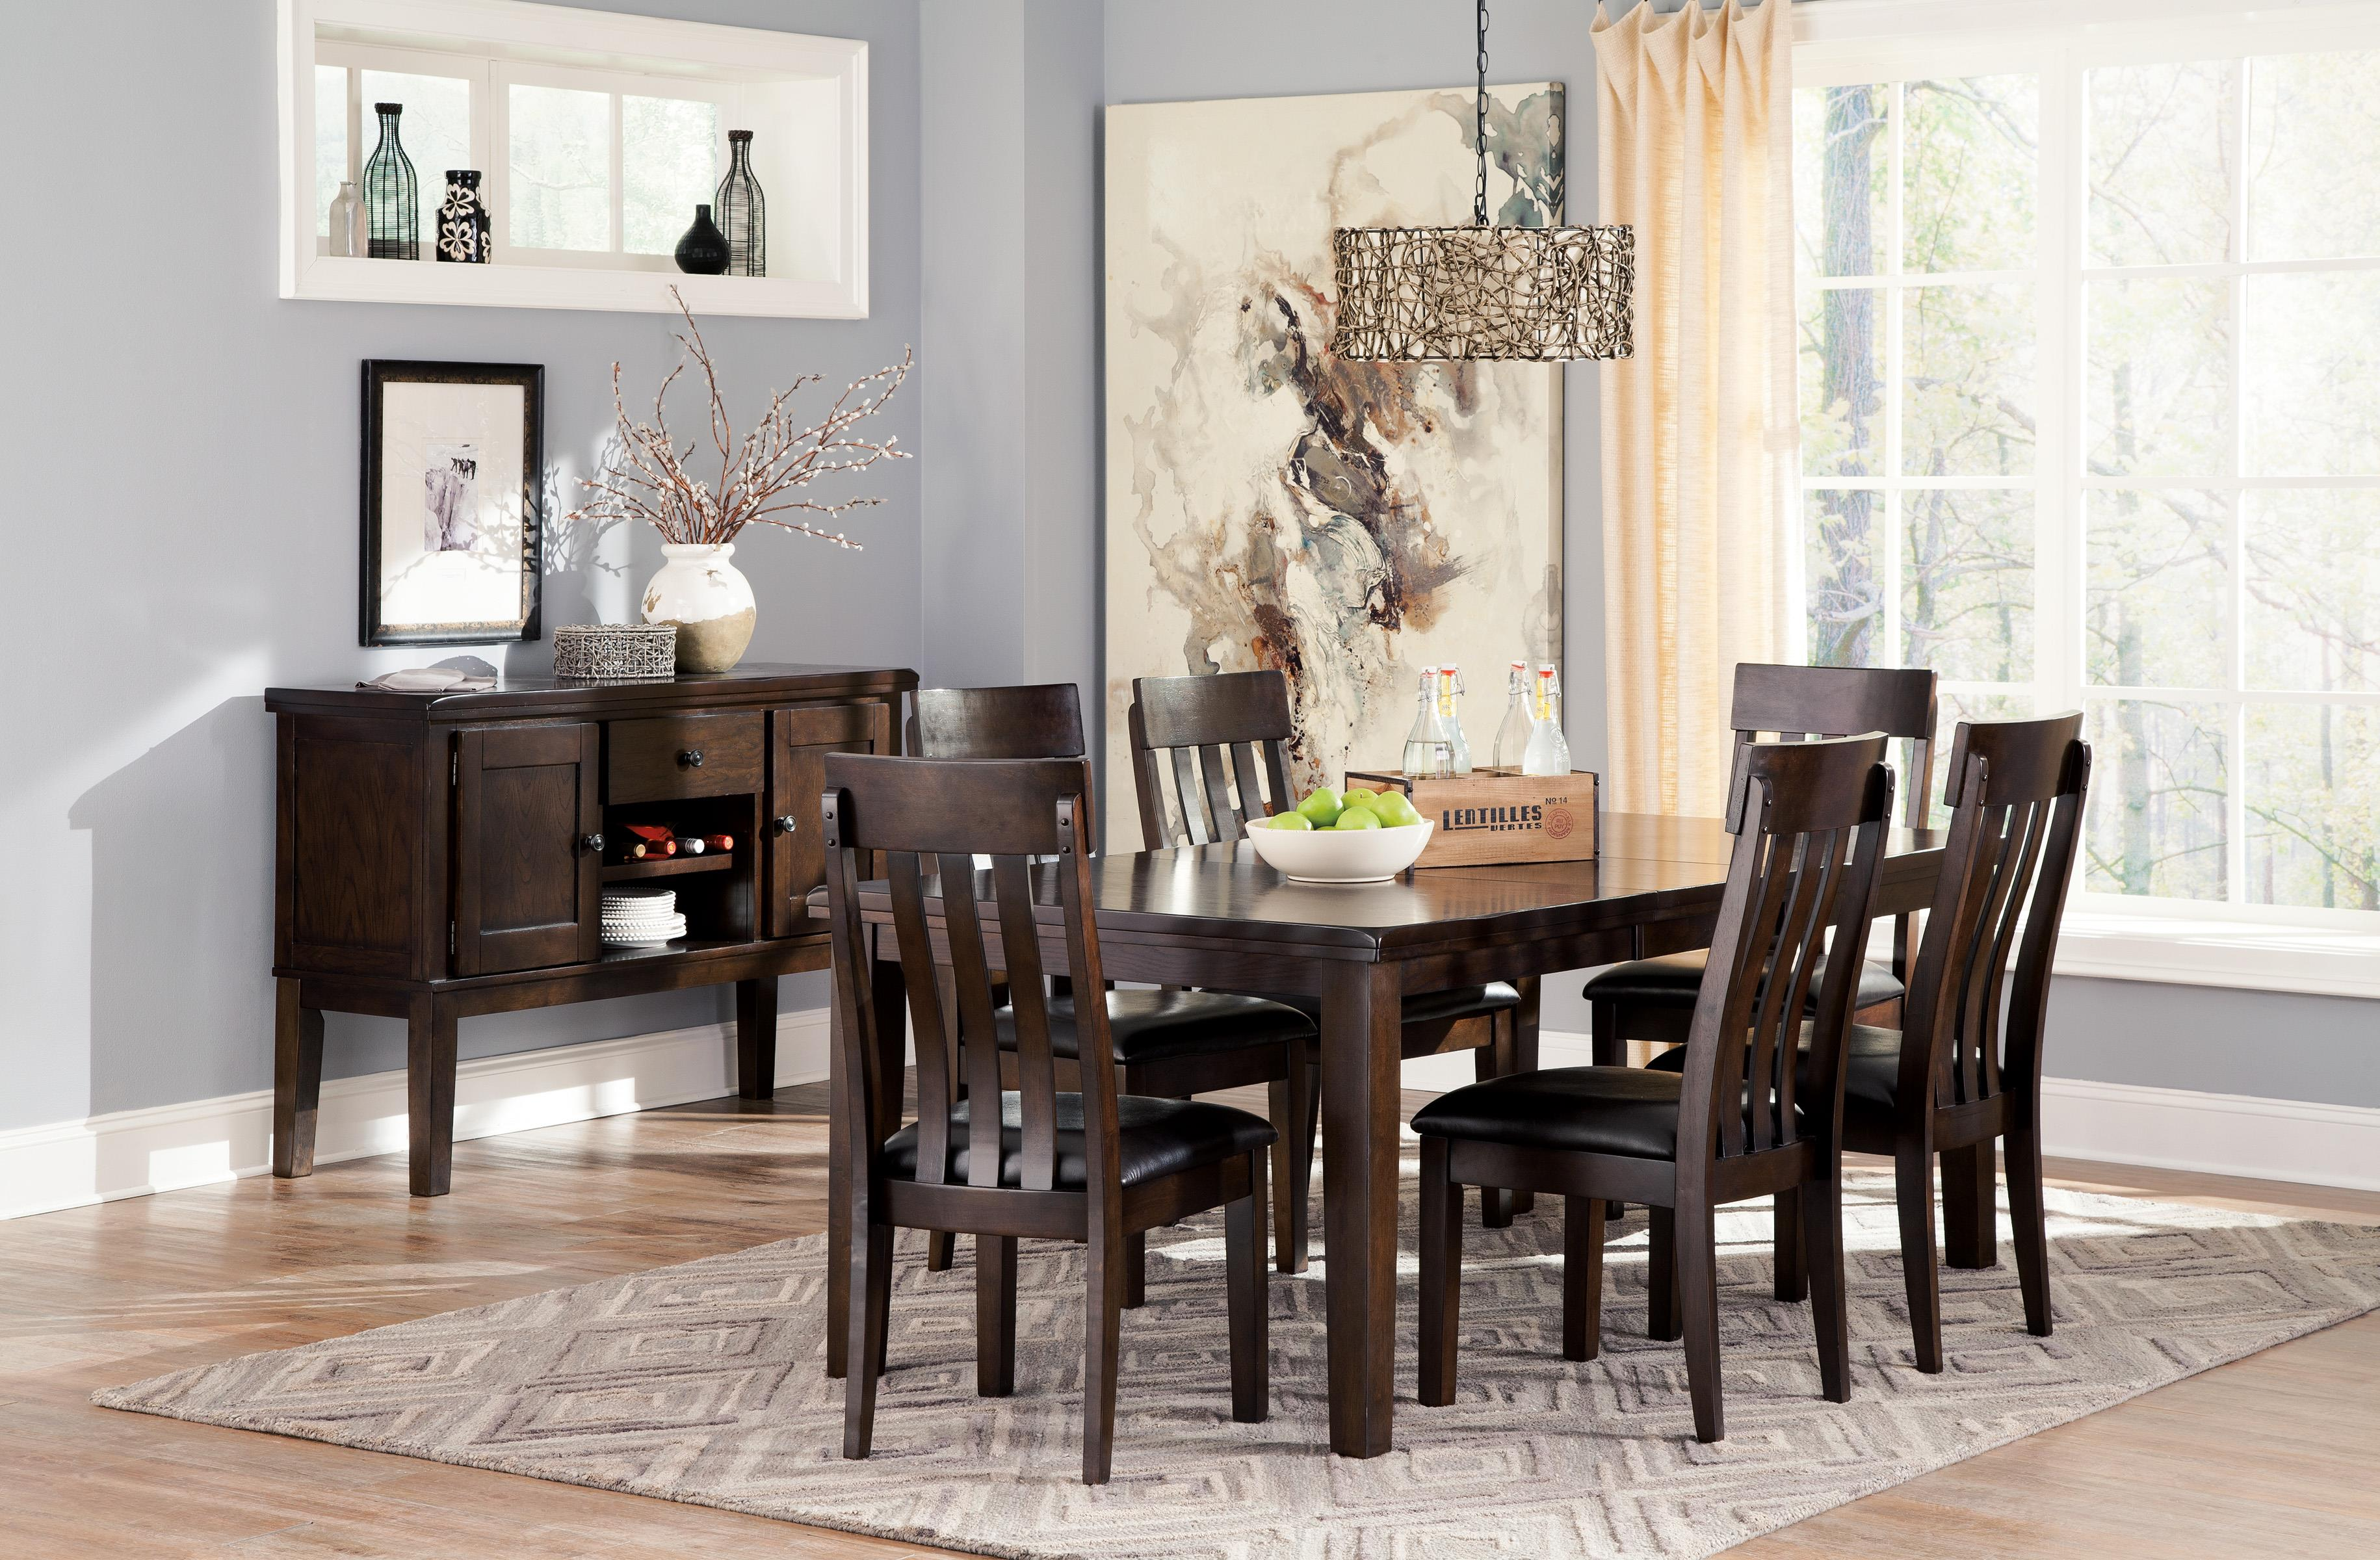 Signature Design by Ashley Haddigan Casual Dining Room Group - Item Number: D596 Dining Room Group 3